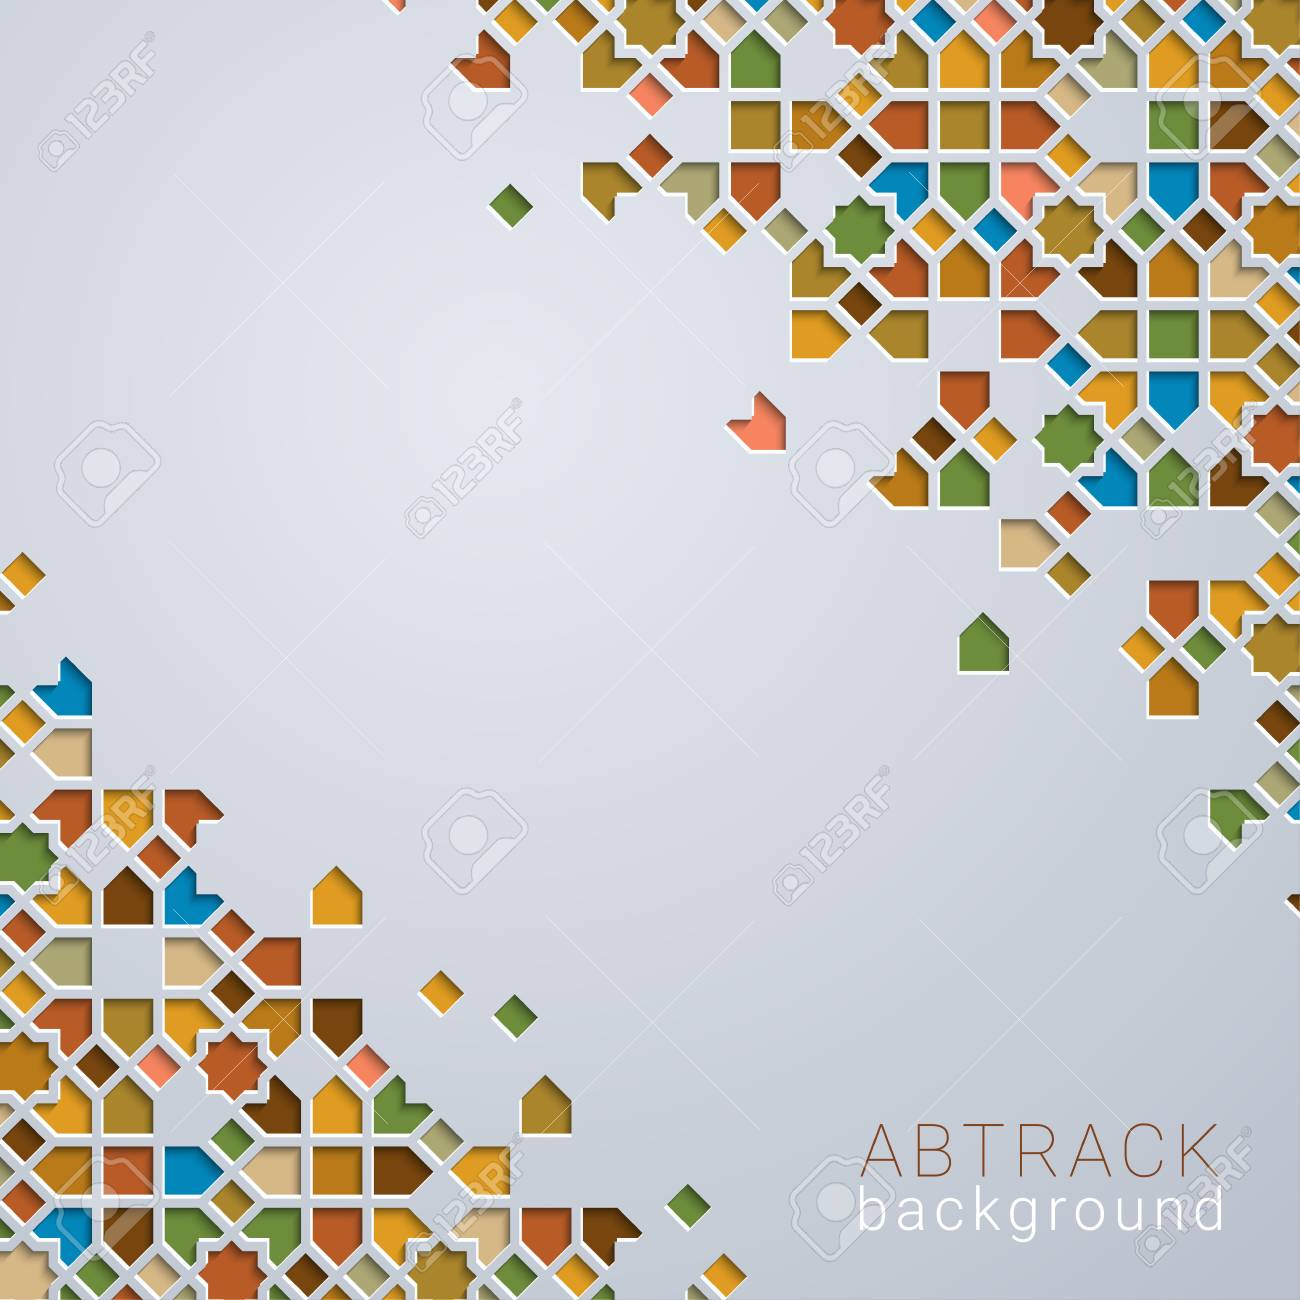 Abstrac background colorfull morocco geometric pattern - 120643752